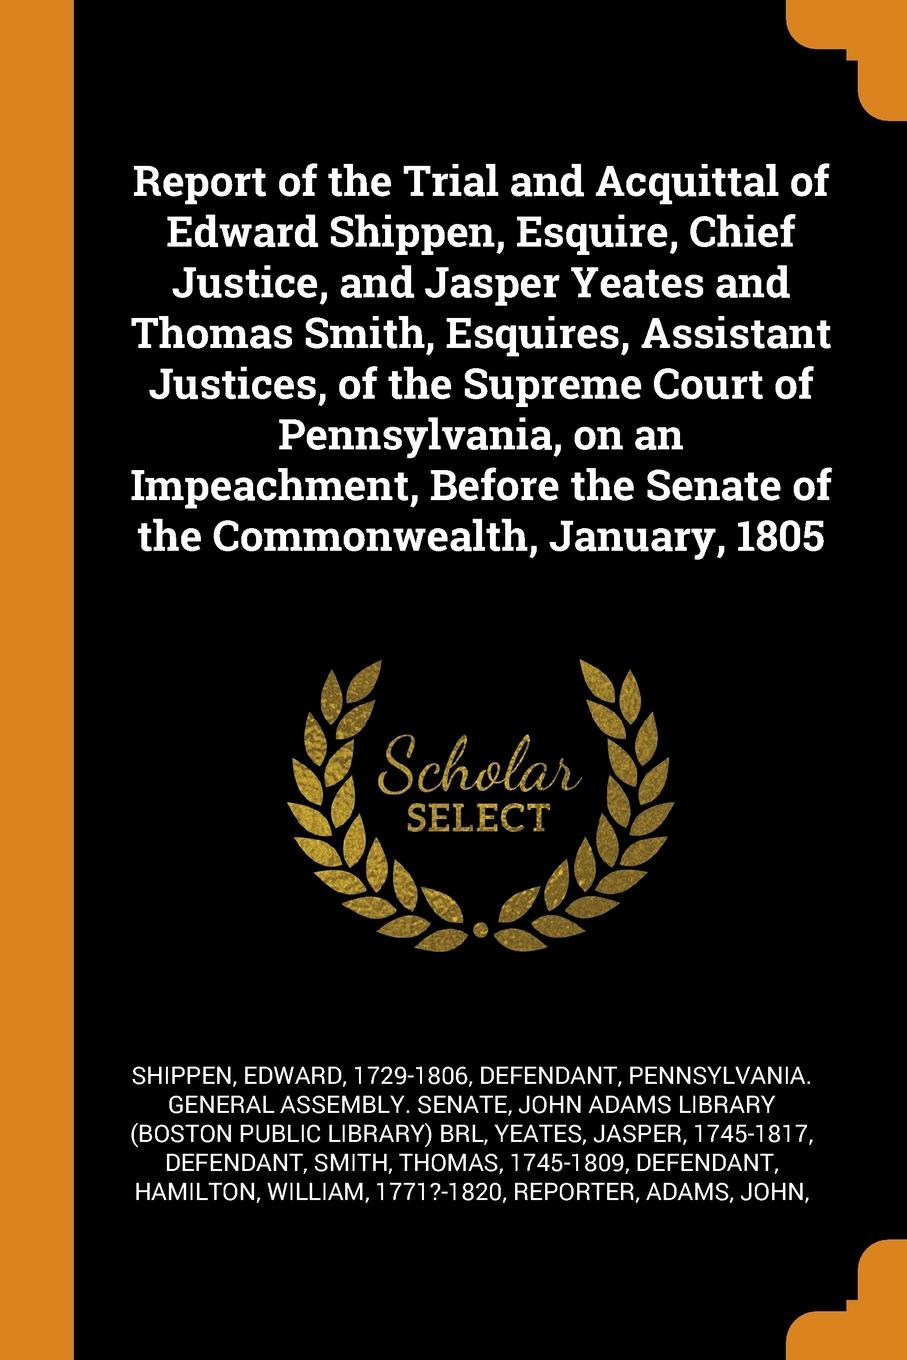 Edward Shippen Report of the Trial and Acquittal of Edward Shippen, Esquire, Chief Justice, and Jasper Yeates and Thomas Smith, Esquires, Assistant Justices, of the Supreme Court of Pennsylvania, on an Impeachment, Before the Senate of the Commonwealth, January,... henry flanders the lives and times of the chief justices of the supreme court of the united states volume 2